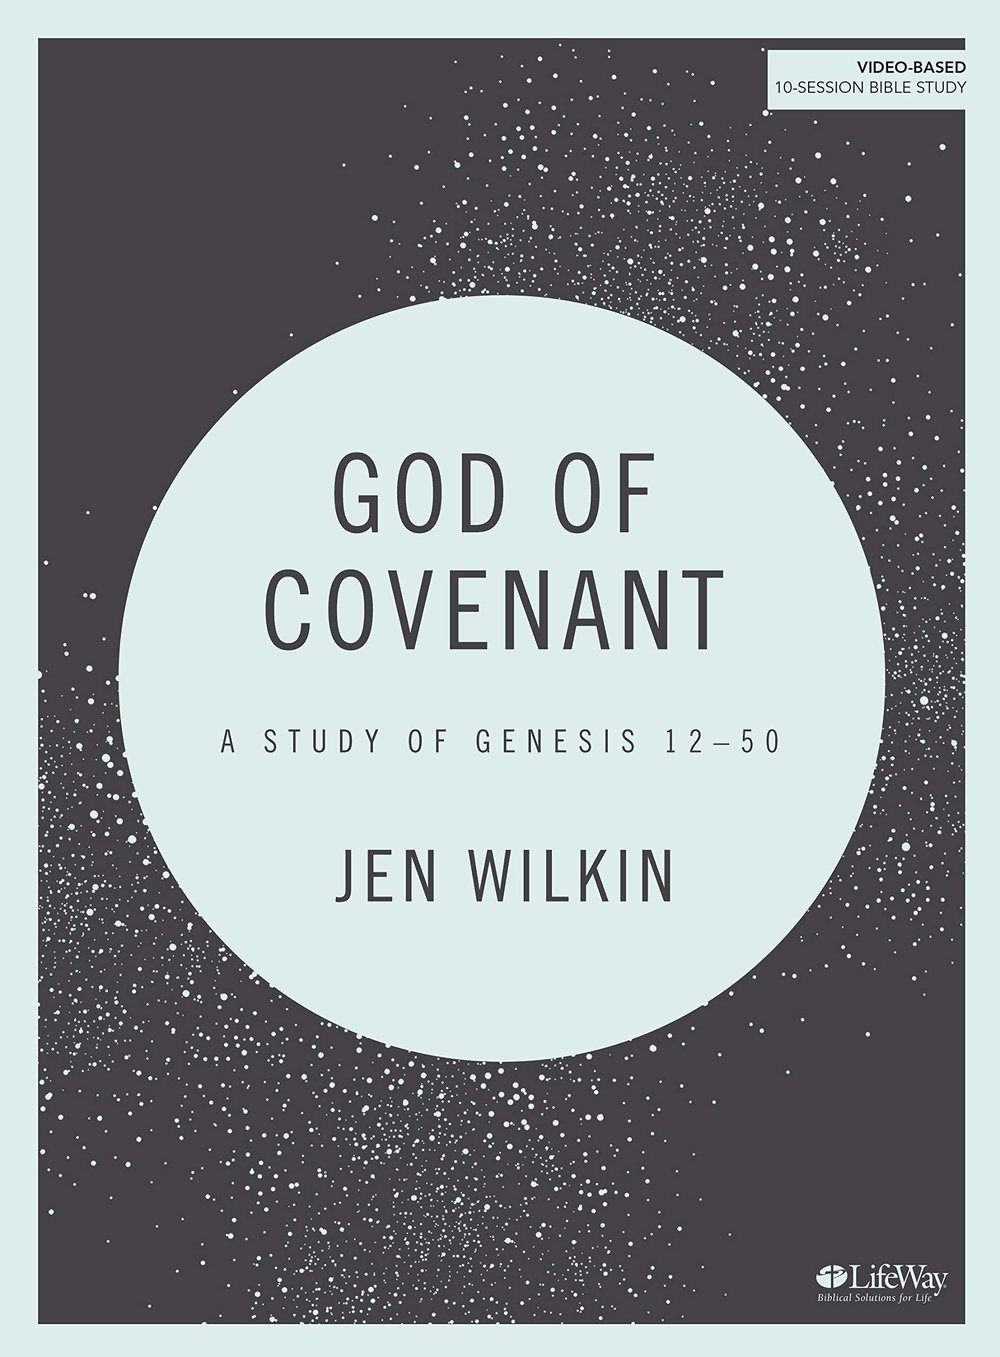 Women's Bible Study - God of Covenant.jpg